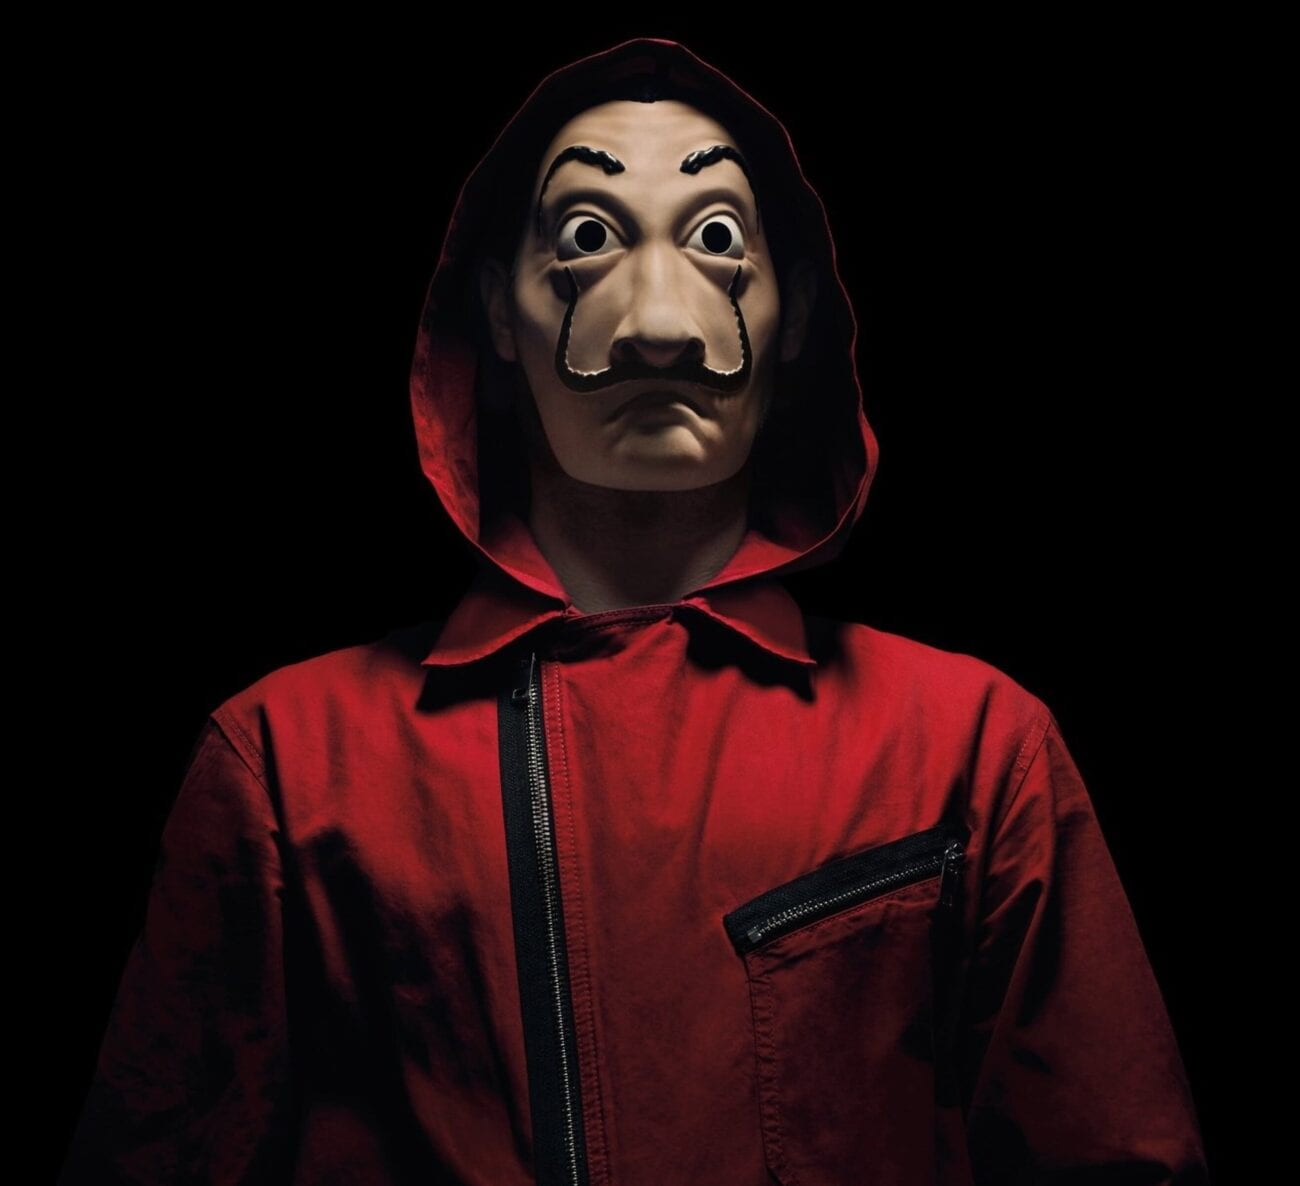 'Money Heist' part 5 is finally upon us. Crack the code and find out if The Professor will escape in the latest installment from the hit series.